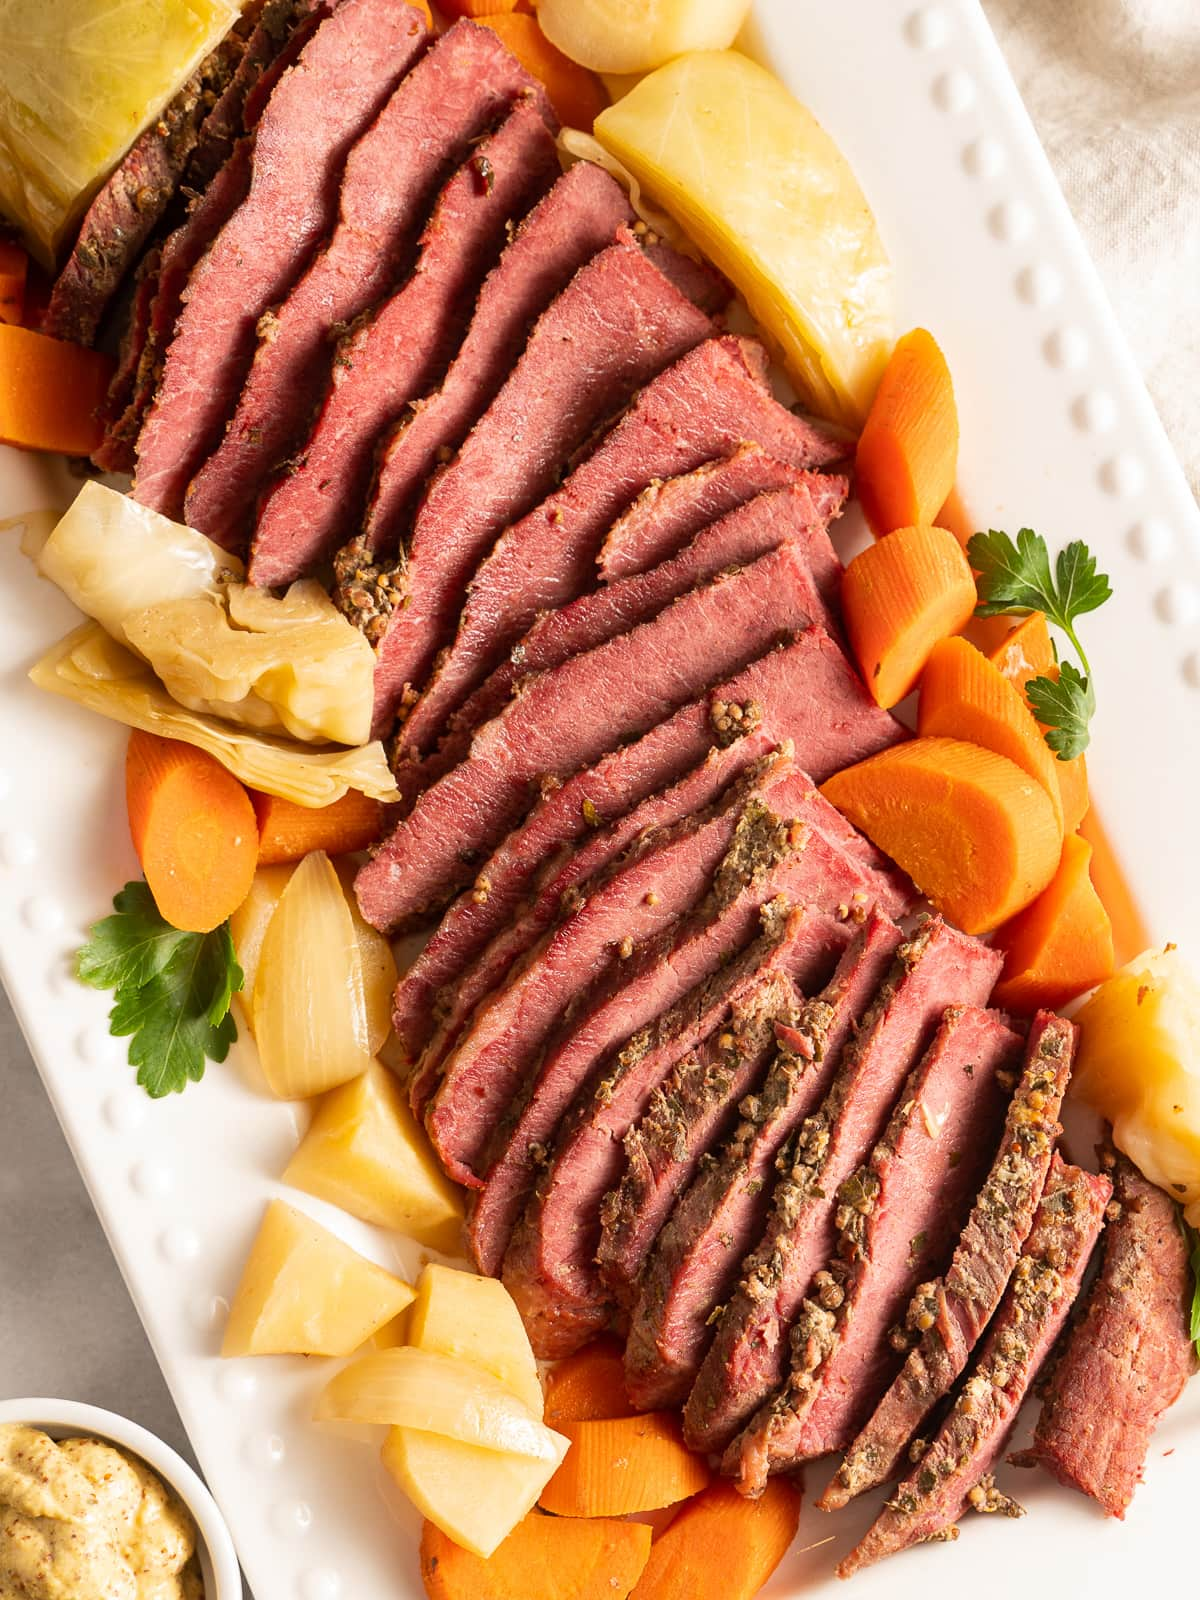 Sliced corned beef, cabbage, carrots, parsnip, onion, celery on white platter